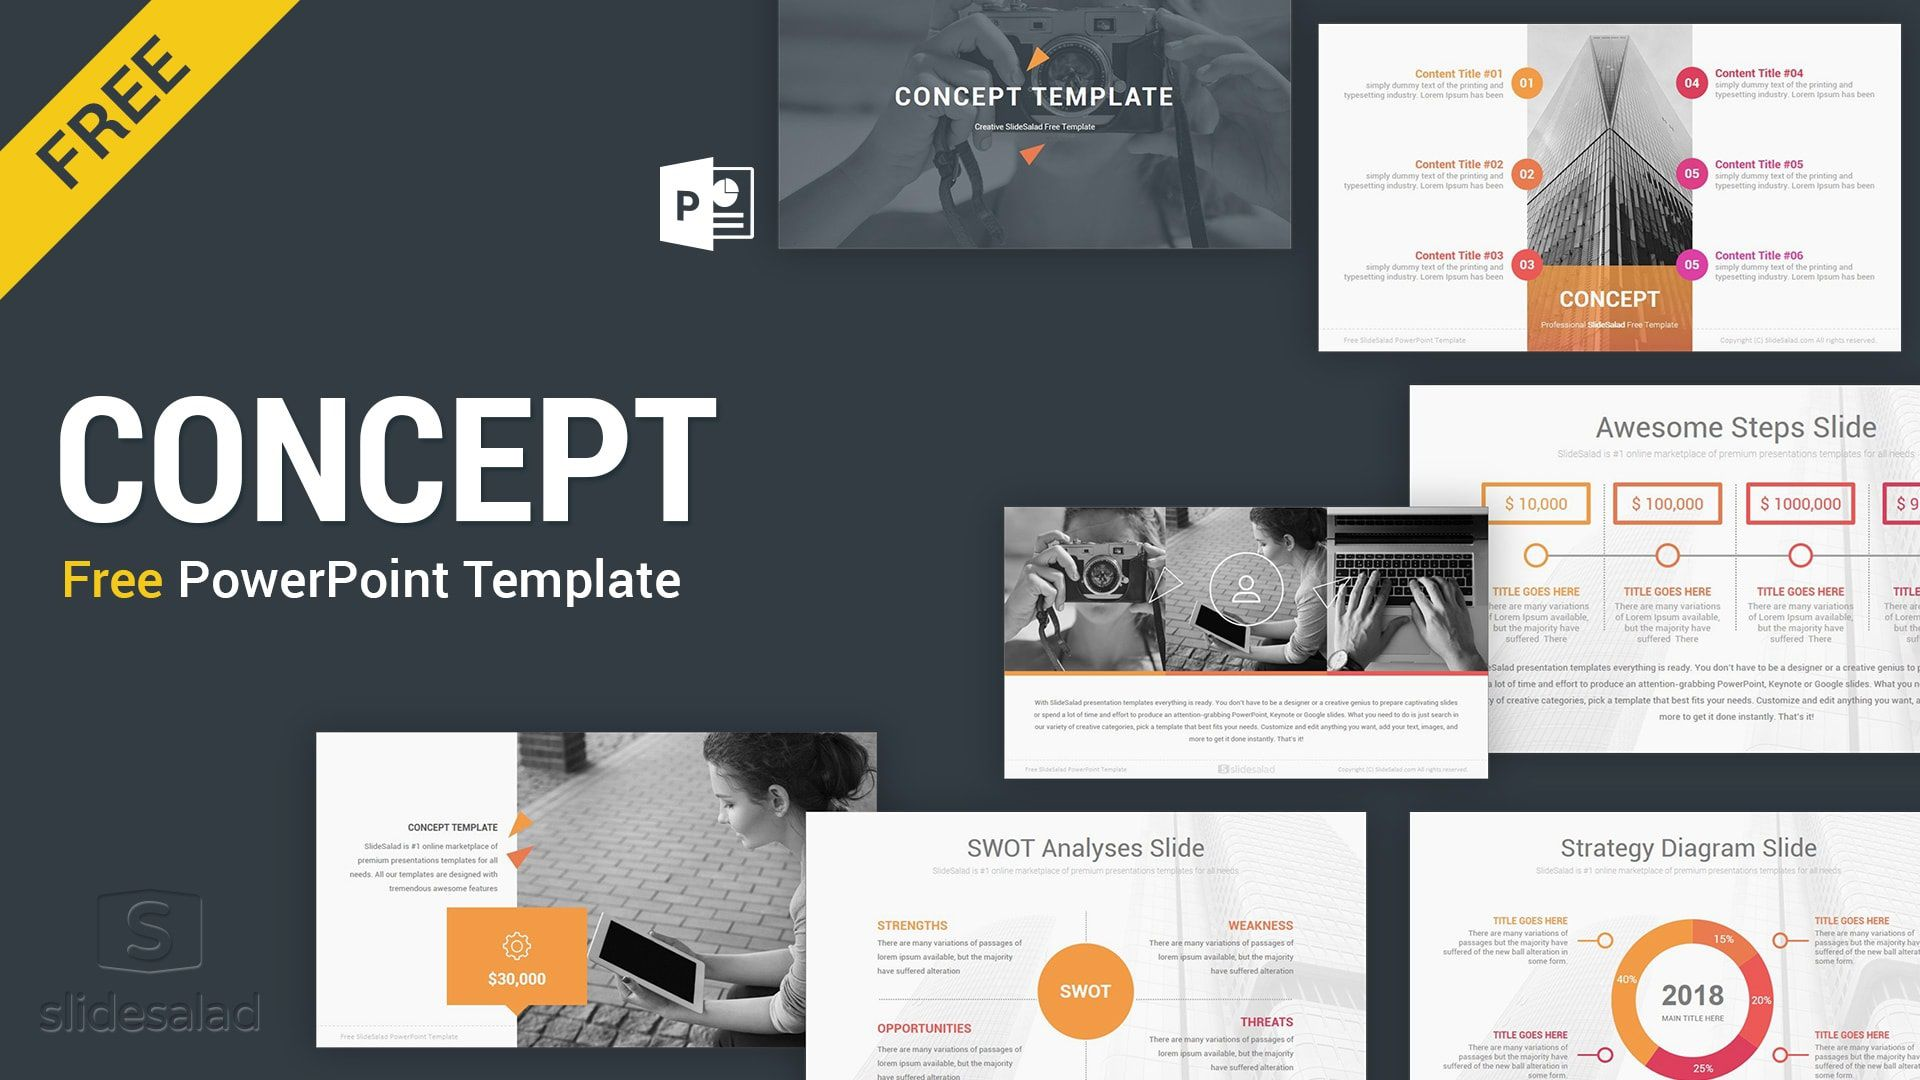 004 Awesome Free Download Powerpoint Template Idea  Templates Medical Theme Presentation 2018Full